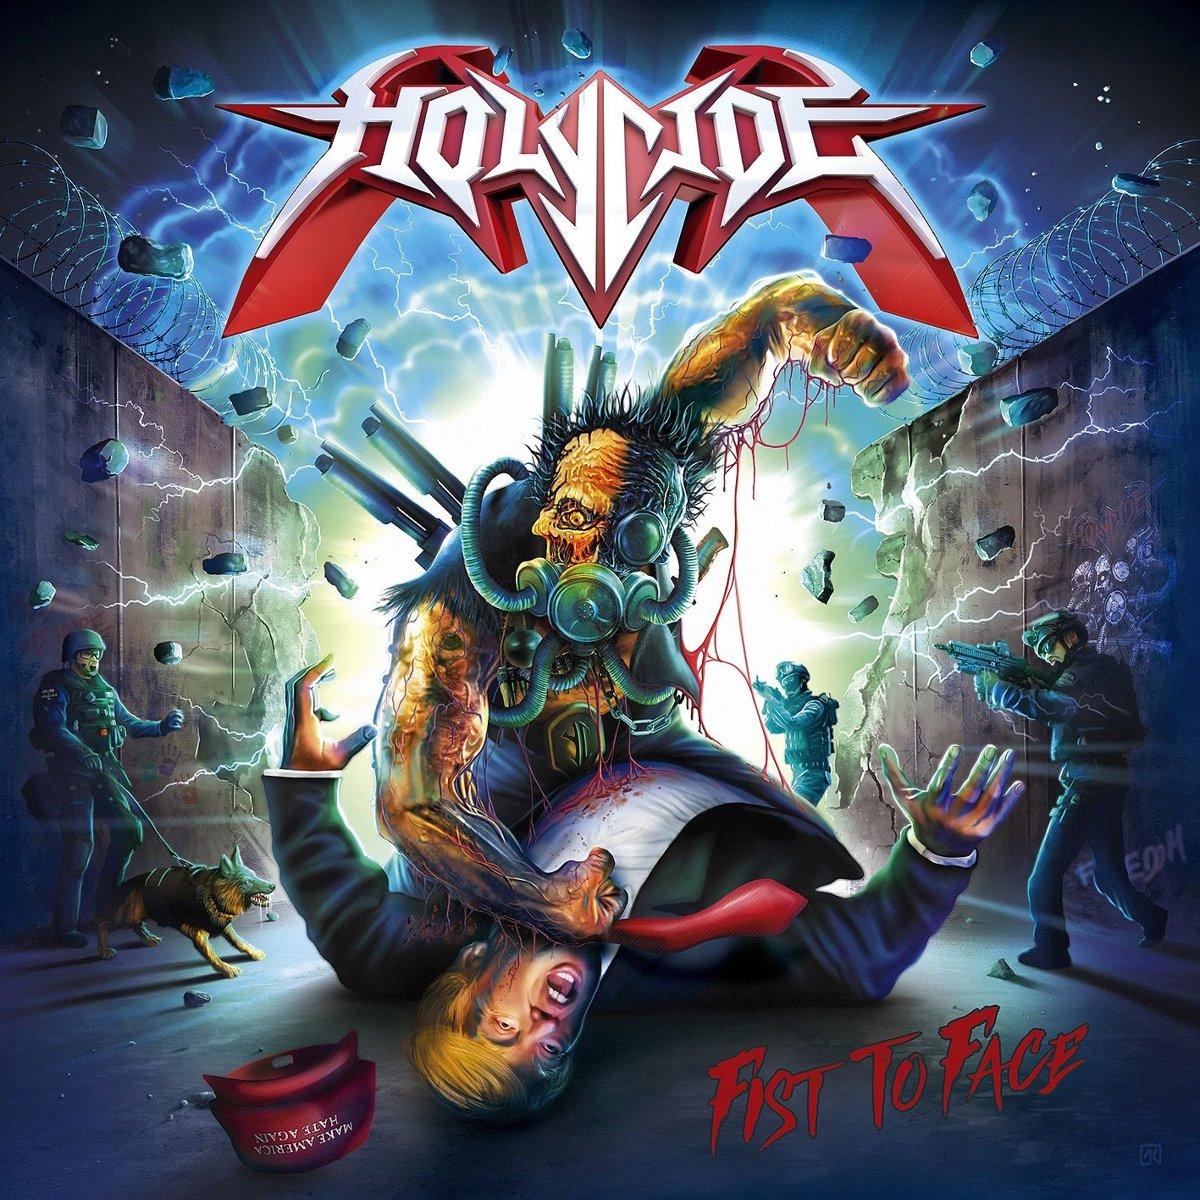 Holycide – Fist To Face